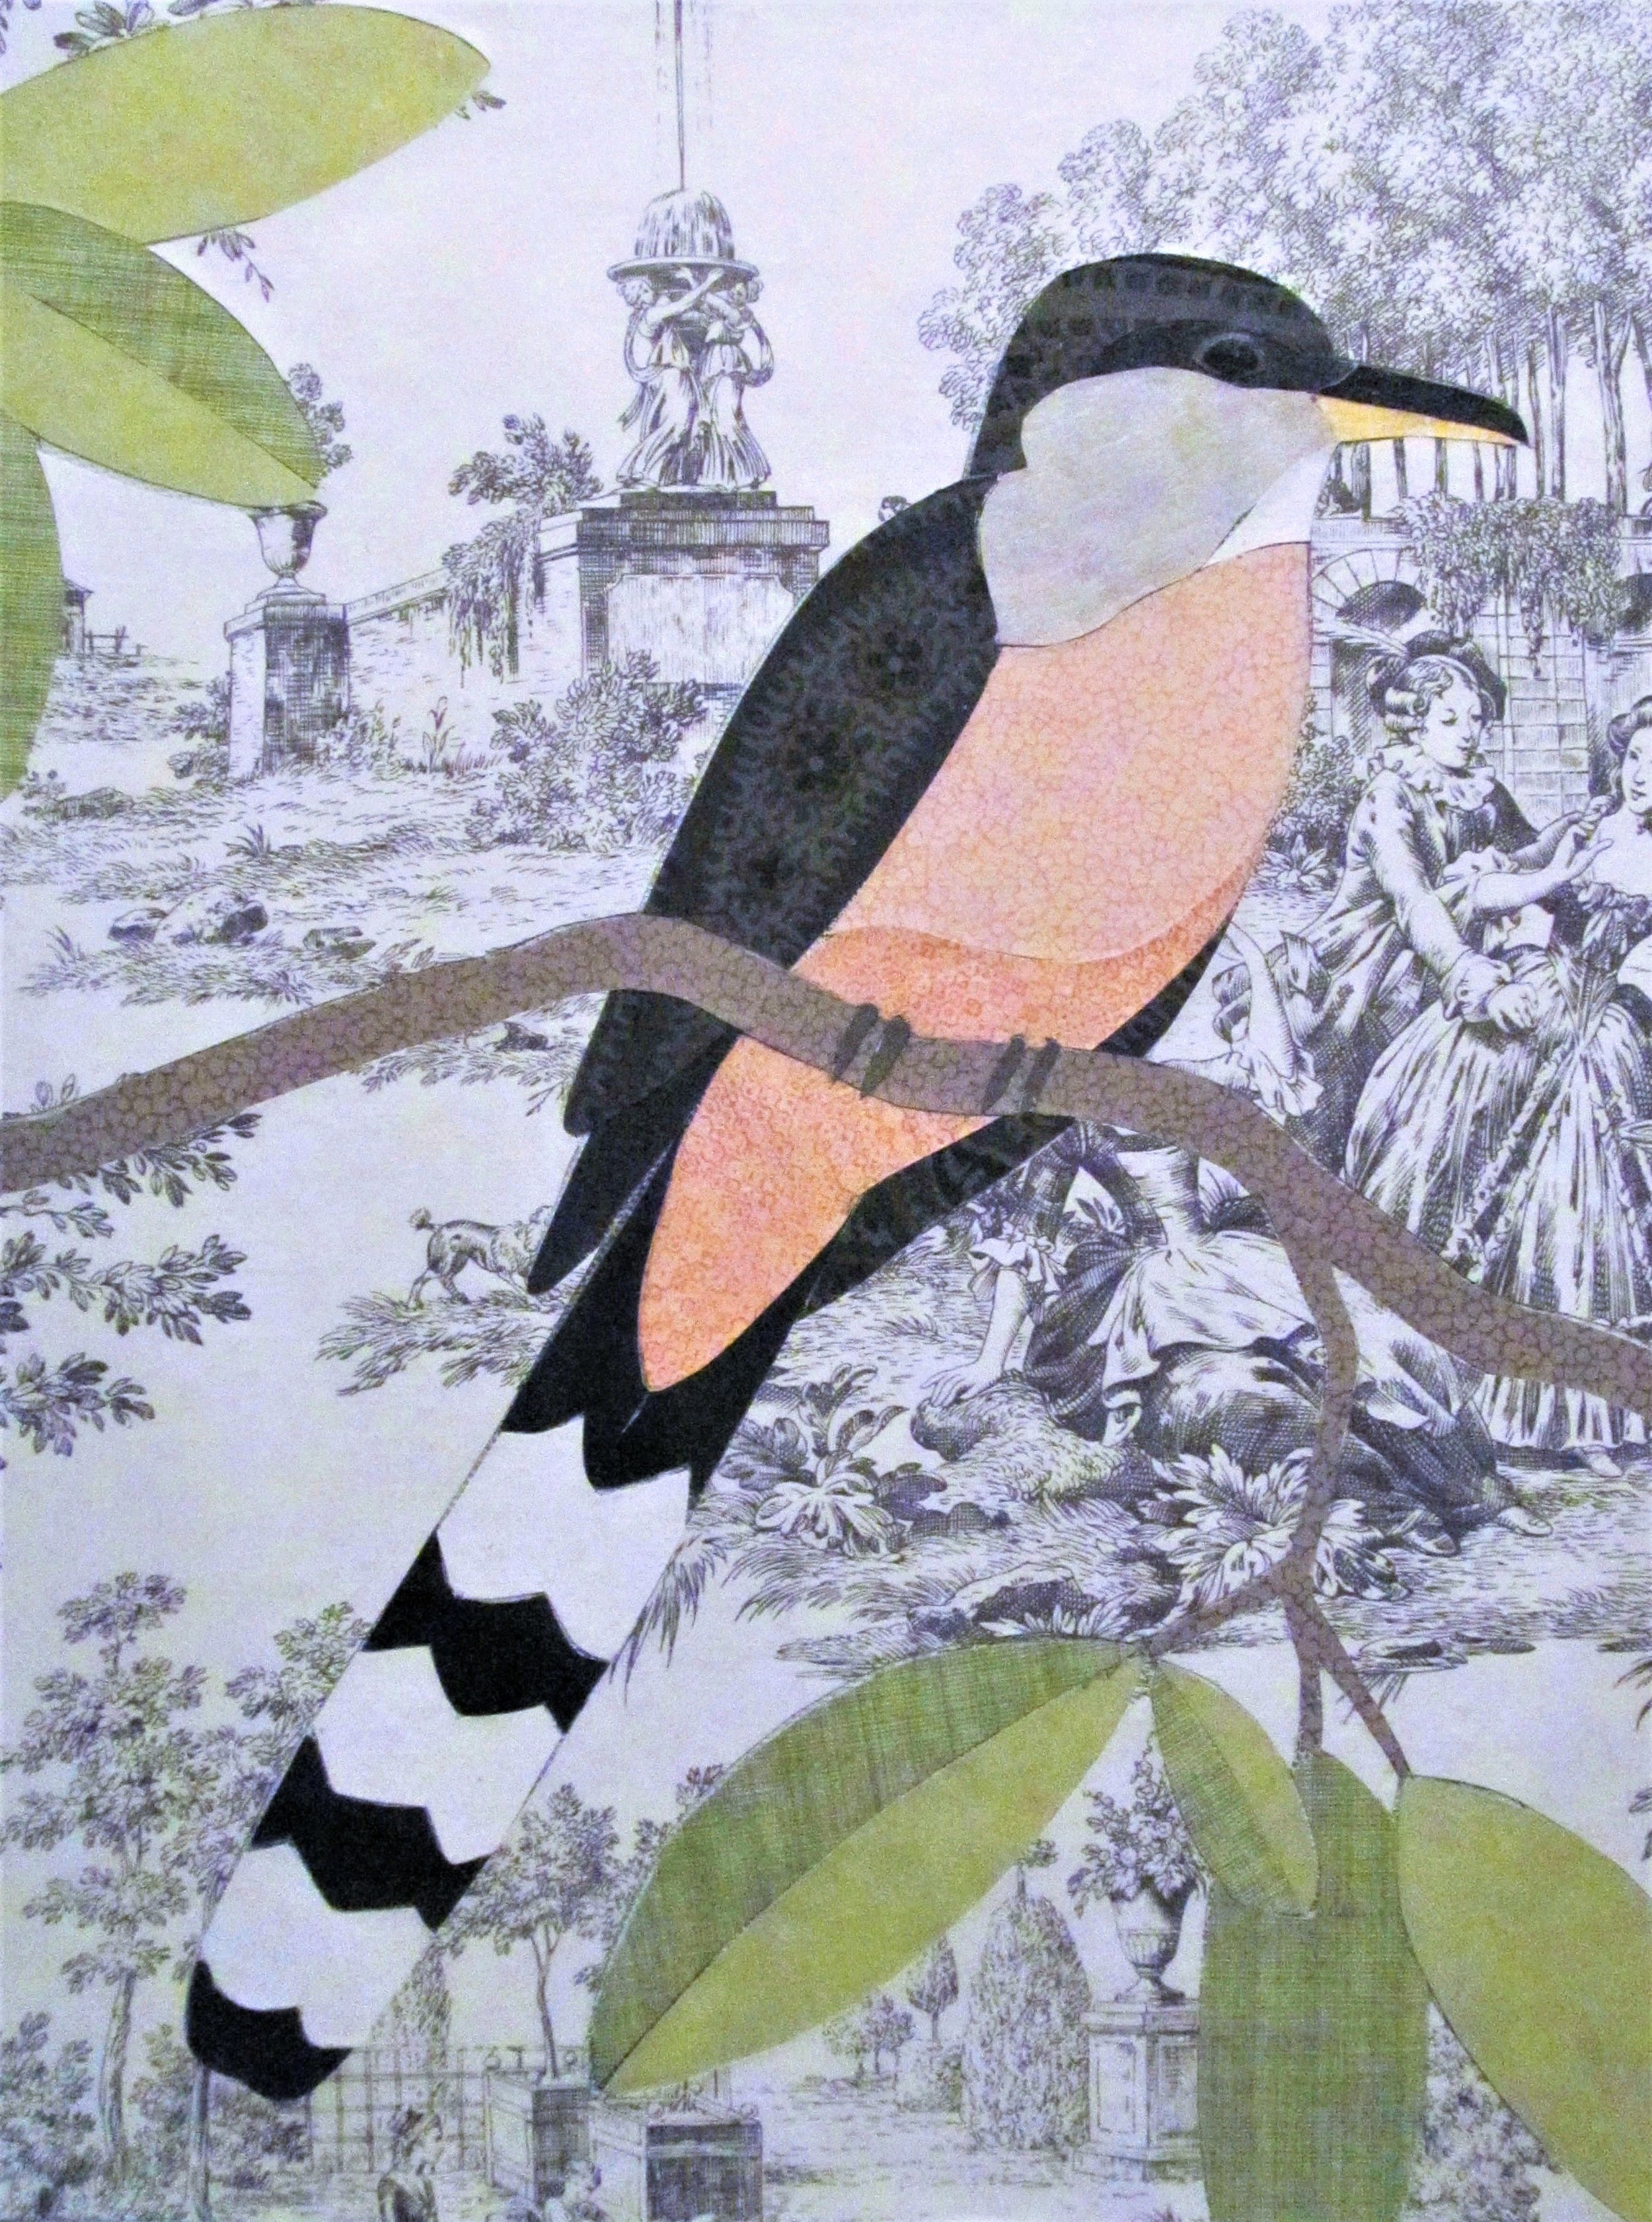 Heidi Randall - Seattle artist Heidi Randall created intricate collages using vintage wallpapers. Her interest in combining patterns finds home on images of birds of all species. These delicate works delight the eye and reward close examination.